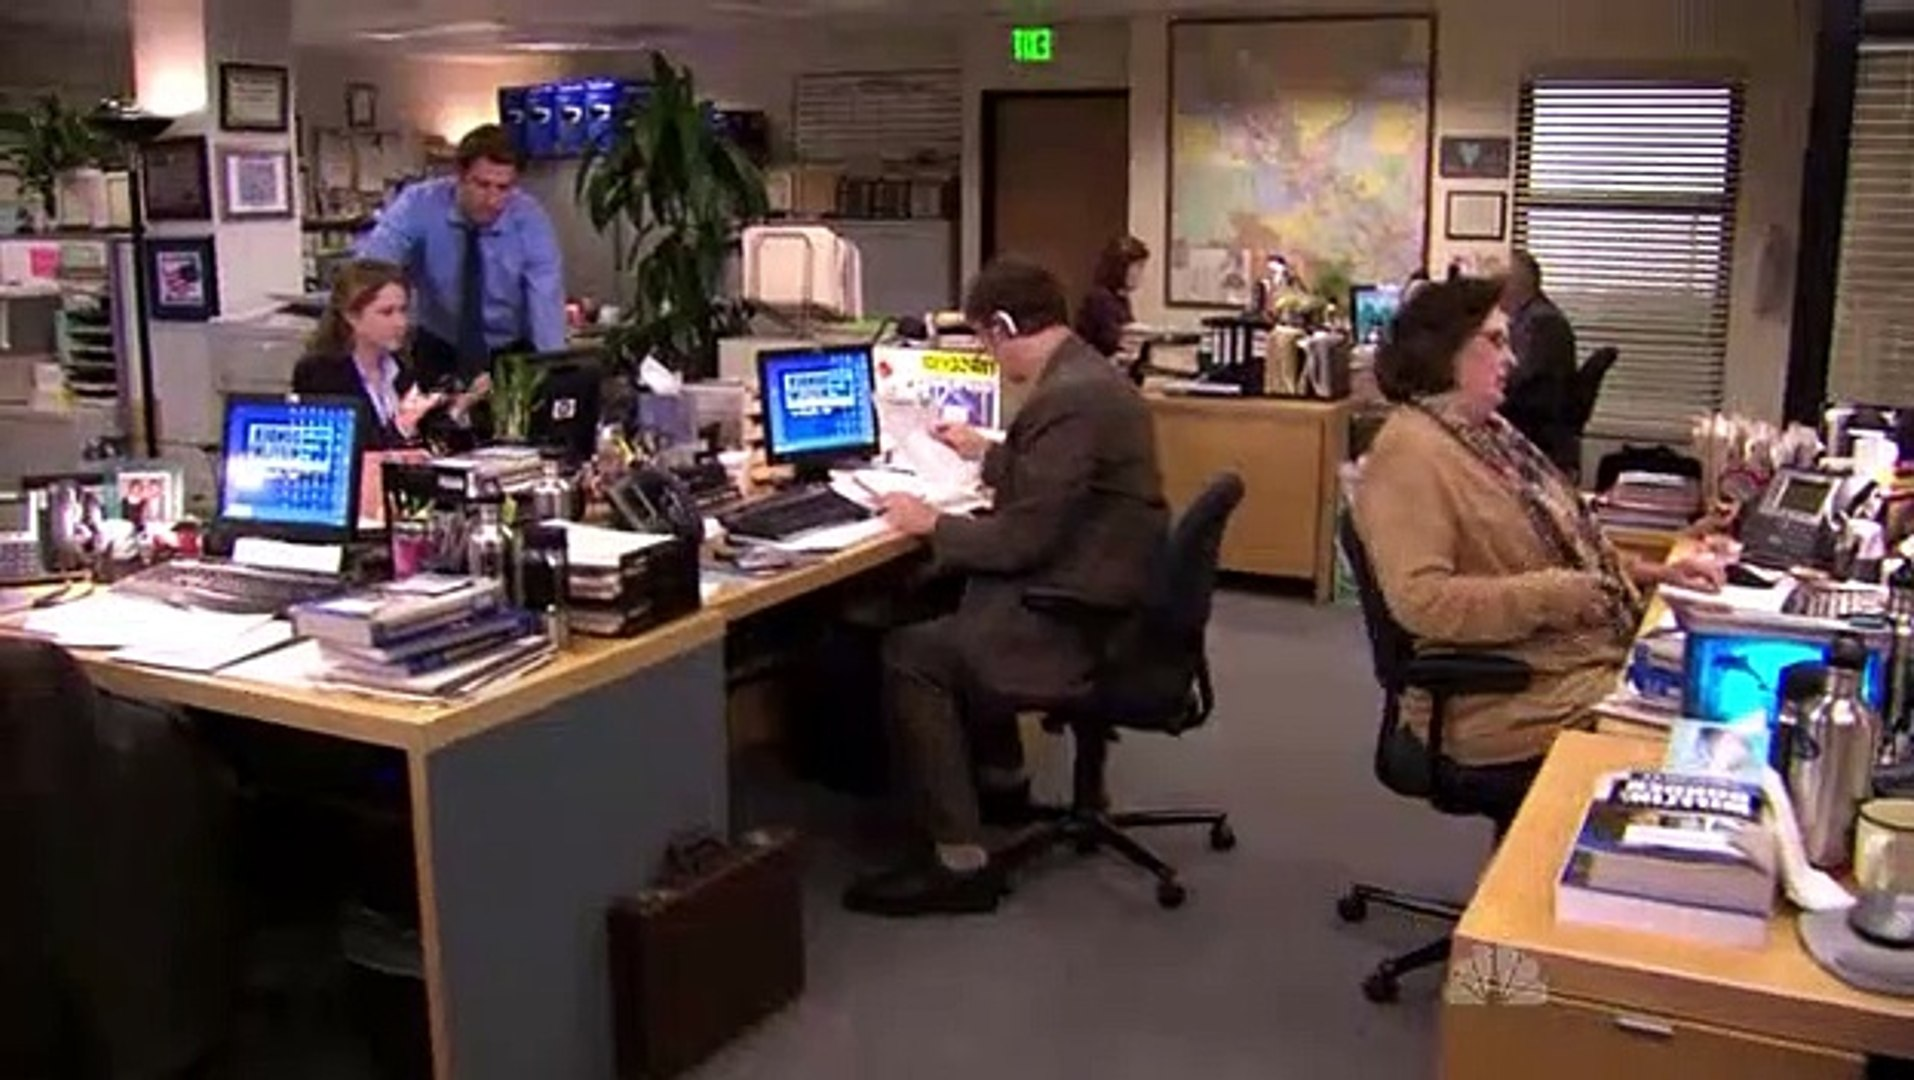 The Office S07 E02 Counseling